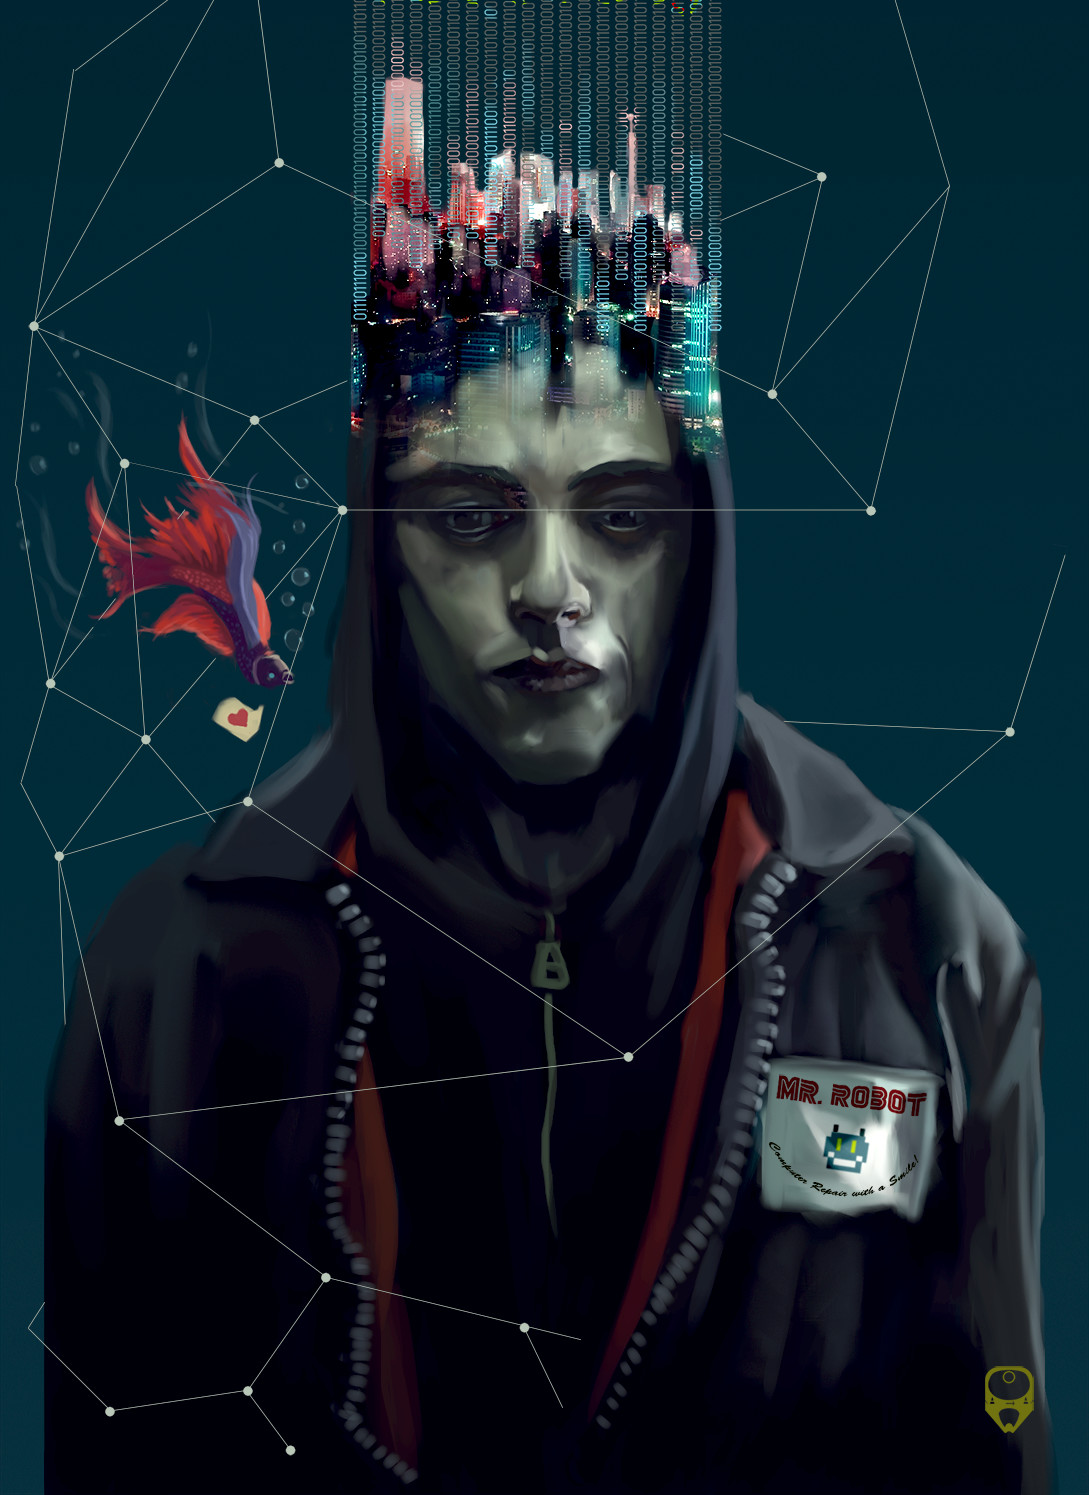 Marcos mansur who mr robot edited b profile